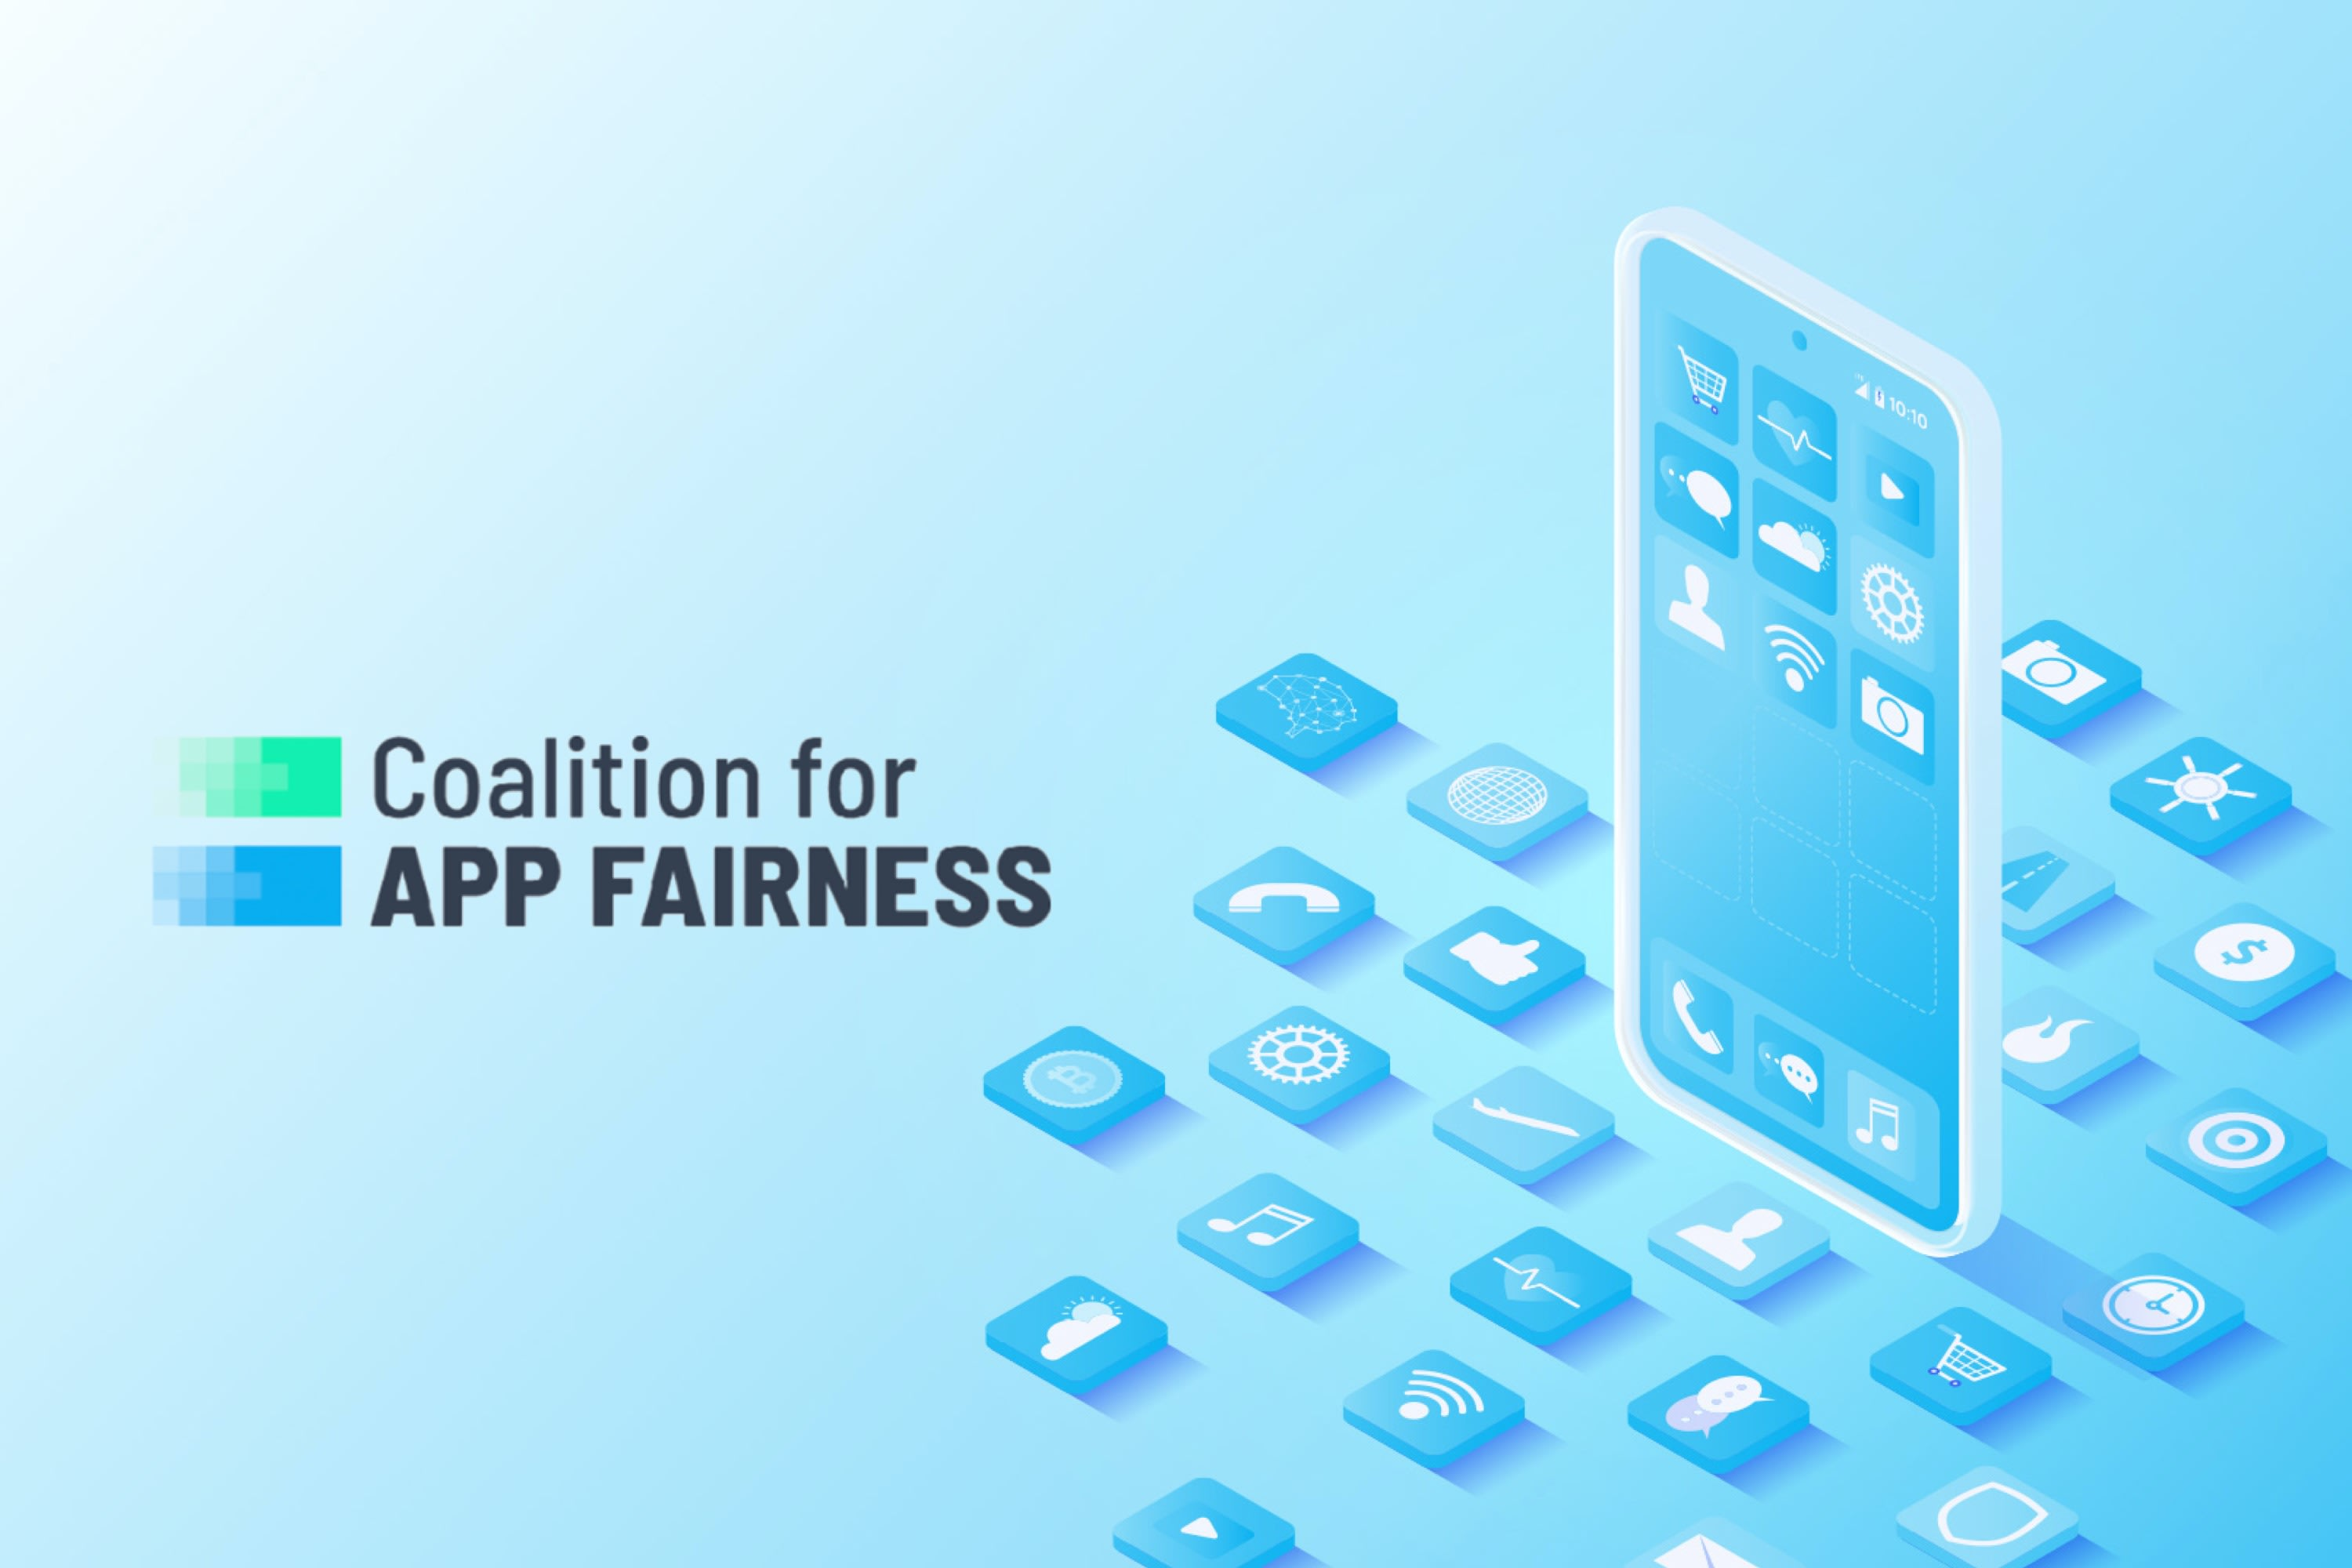 app-store-small-business-program-enrollment-now-open-to-developers-20201203-1